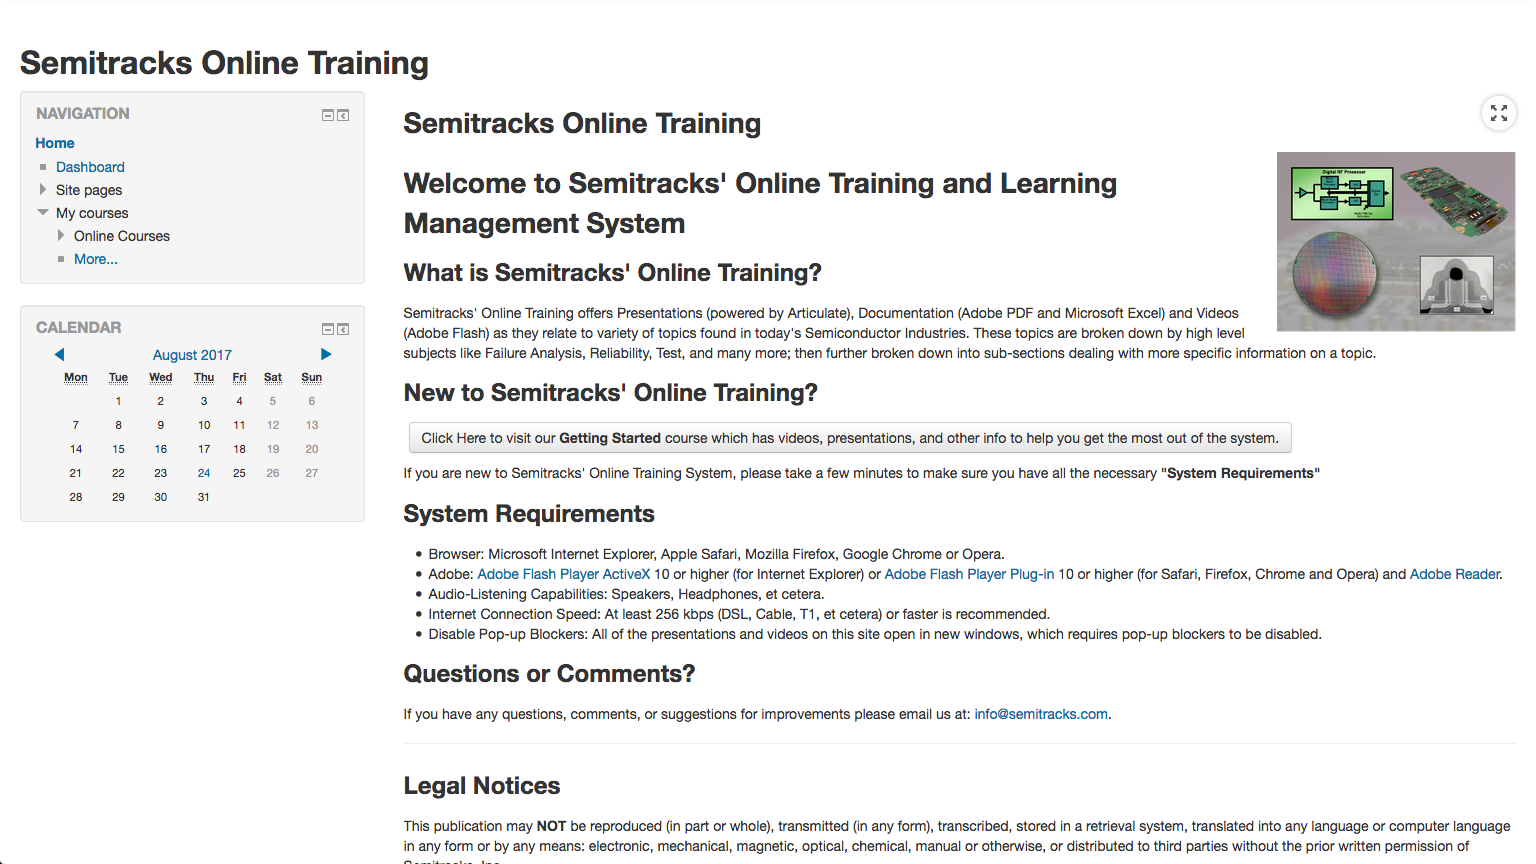 Online Training Overview Screenshot